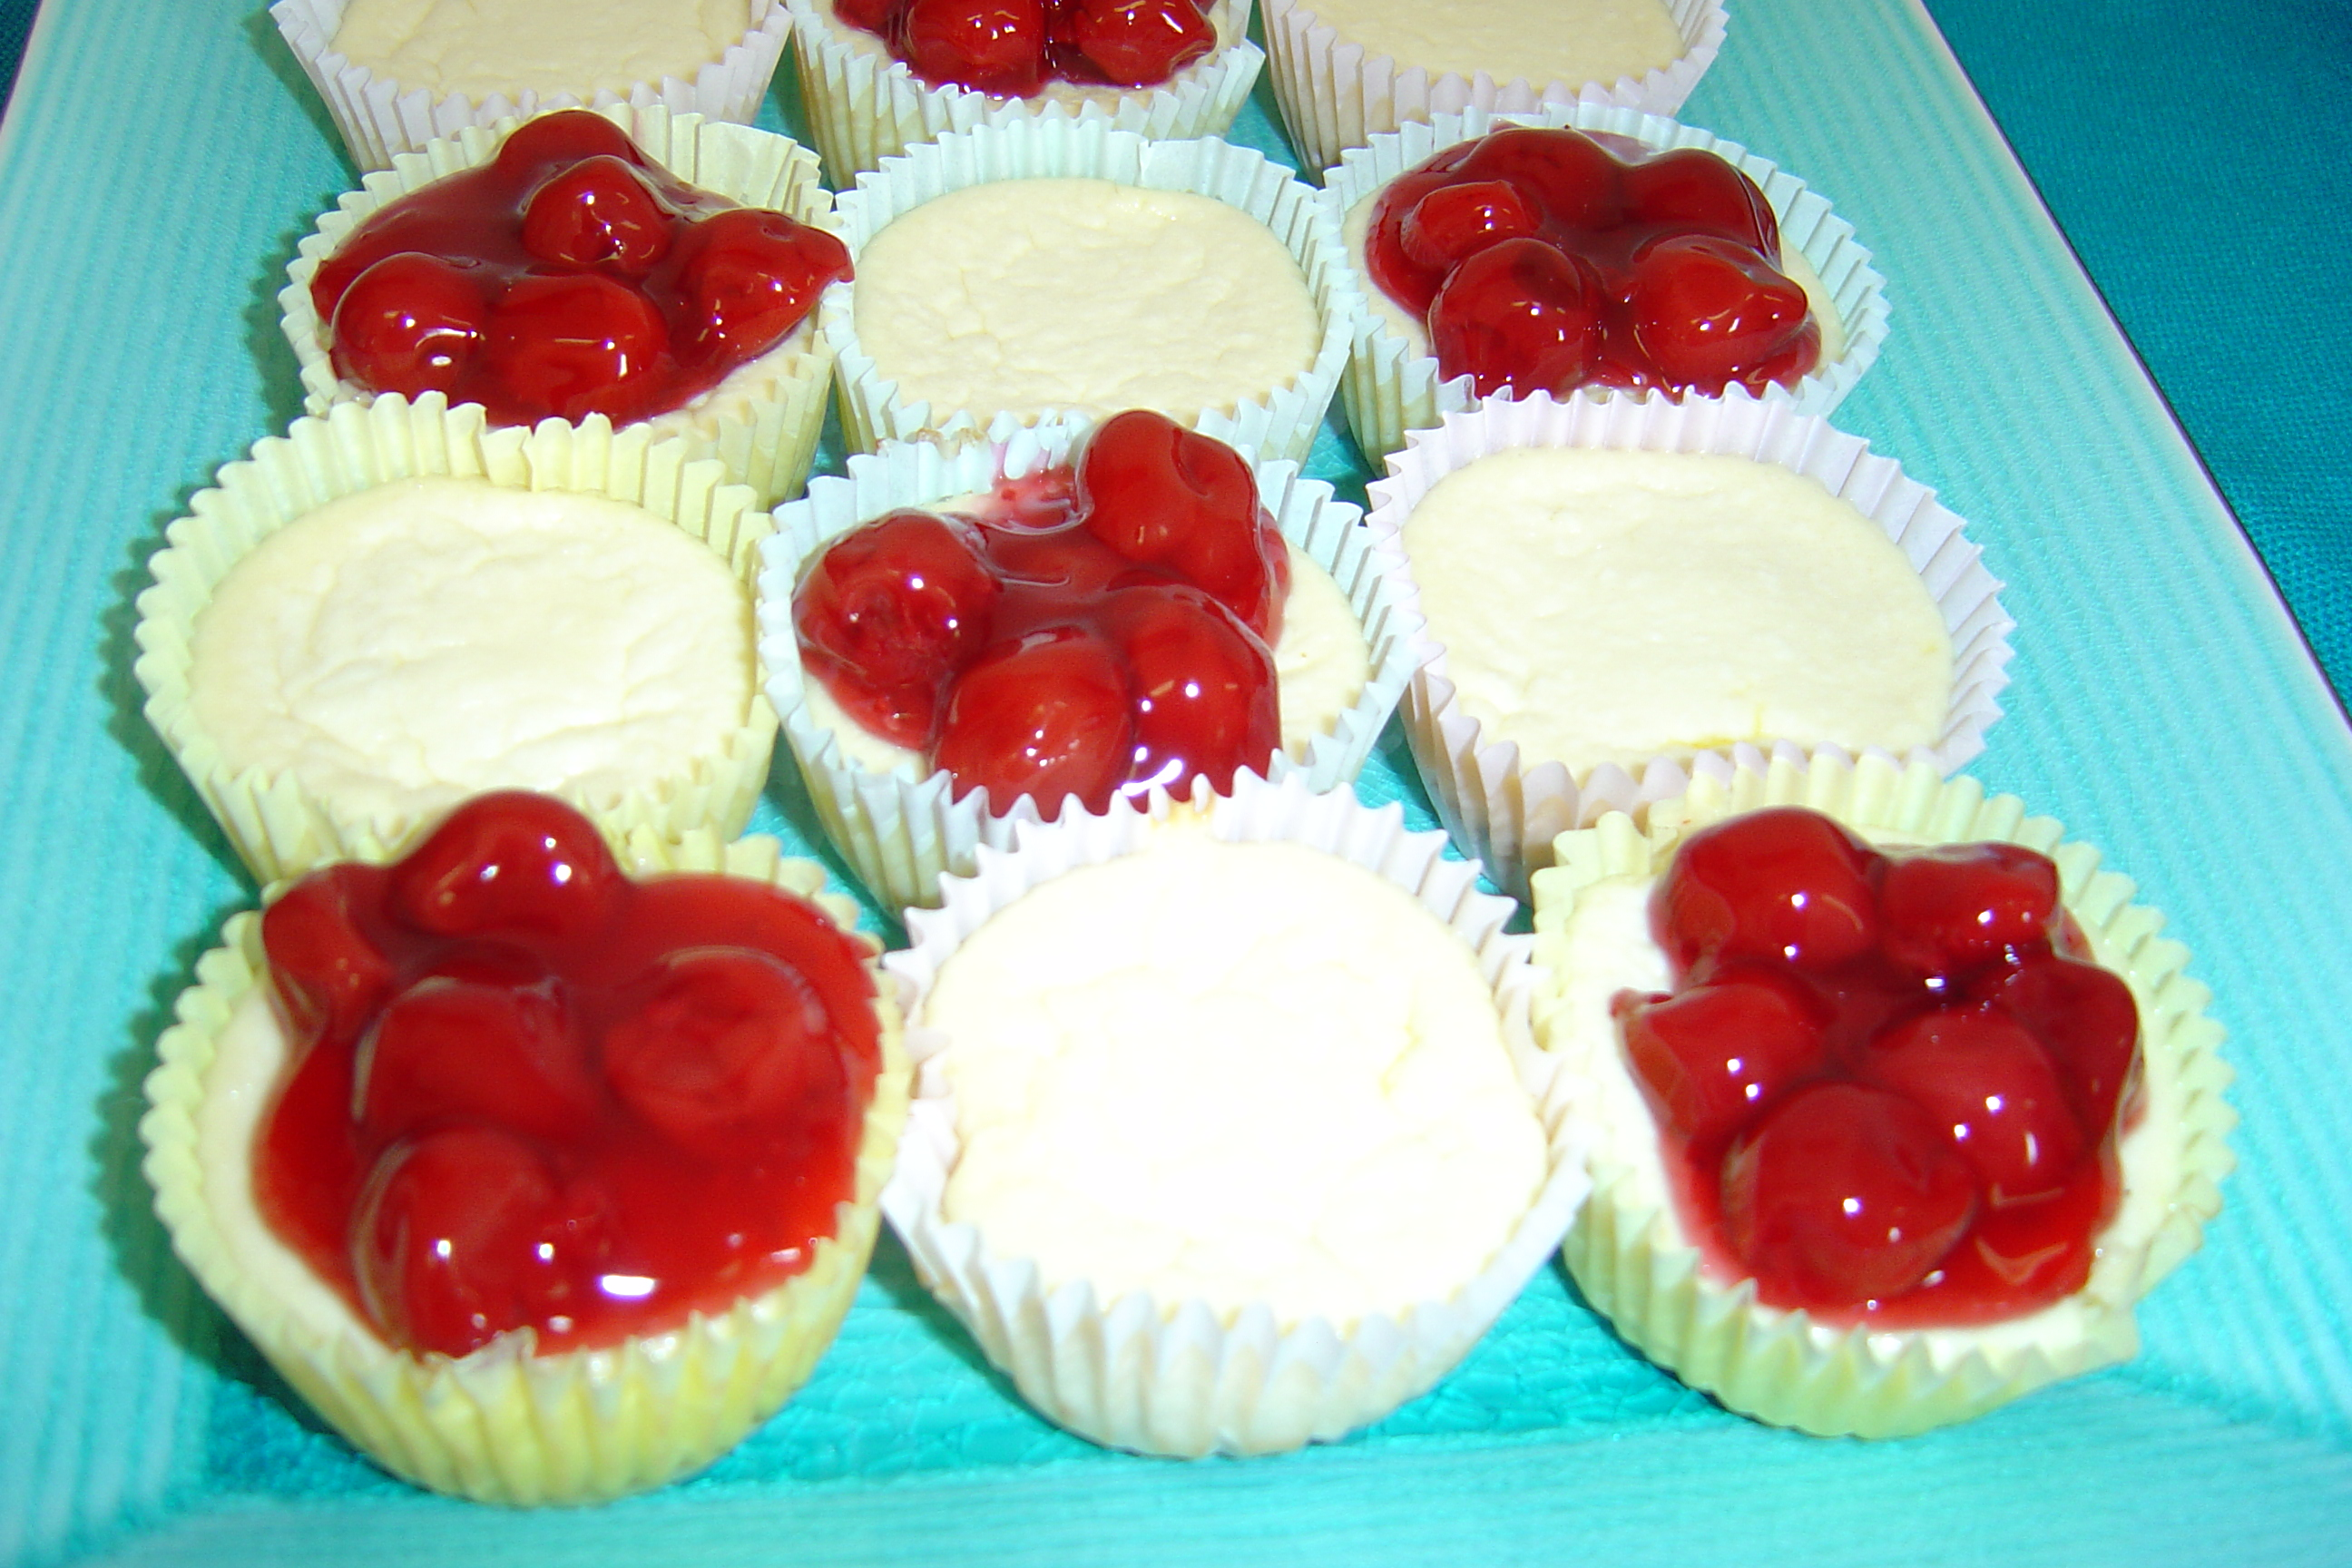 Close-up of the mini cheesecakes